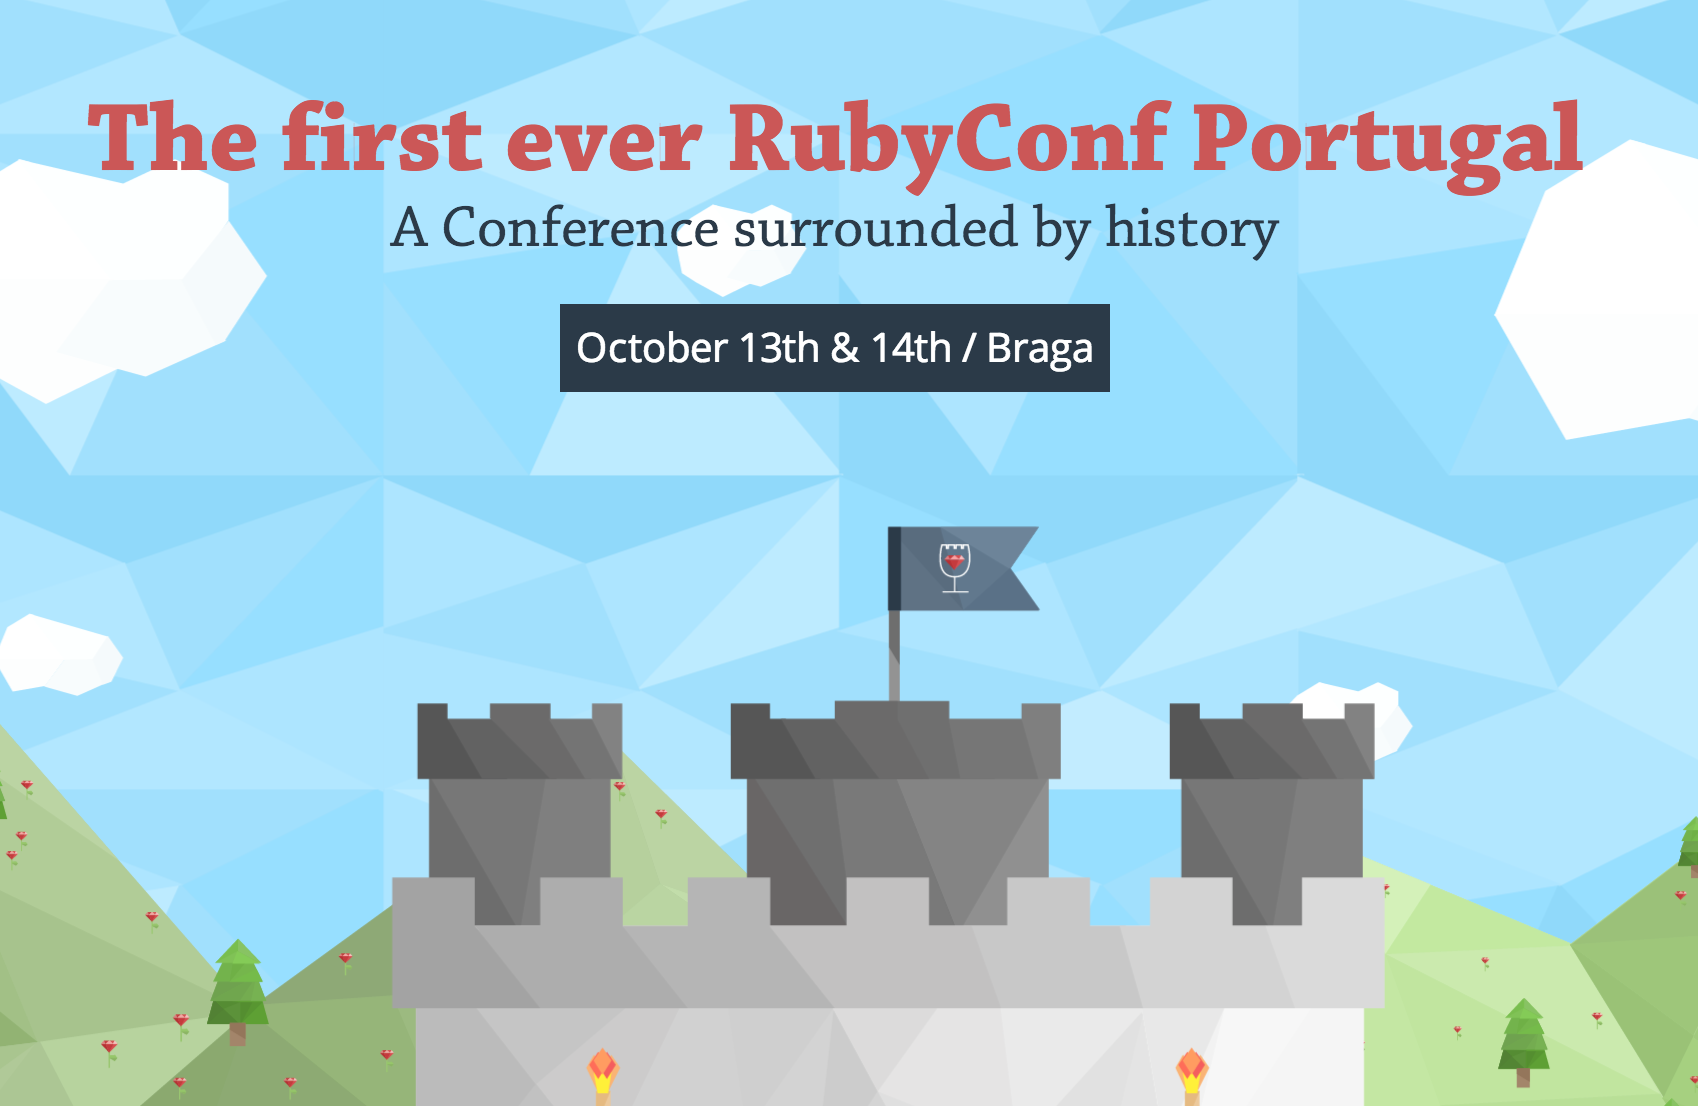 Source: rubyconf.pt